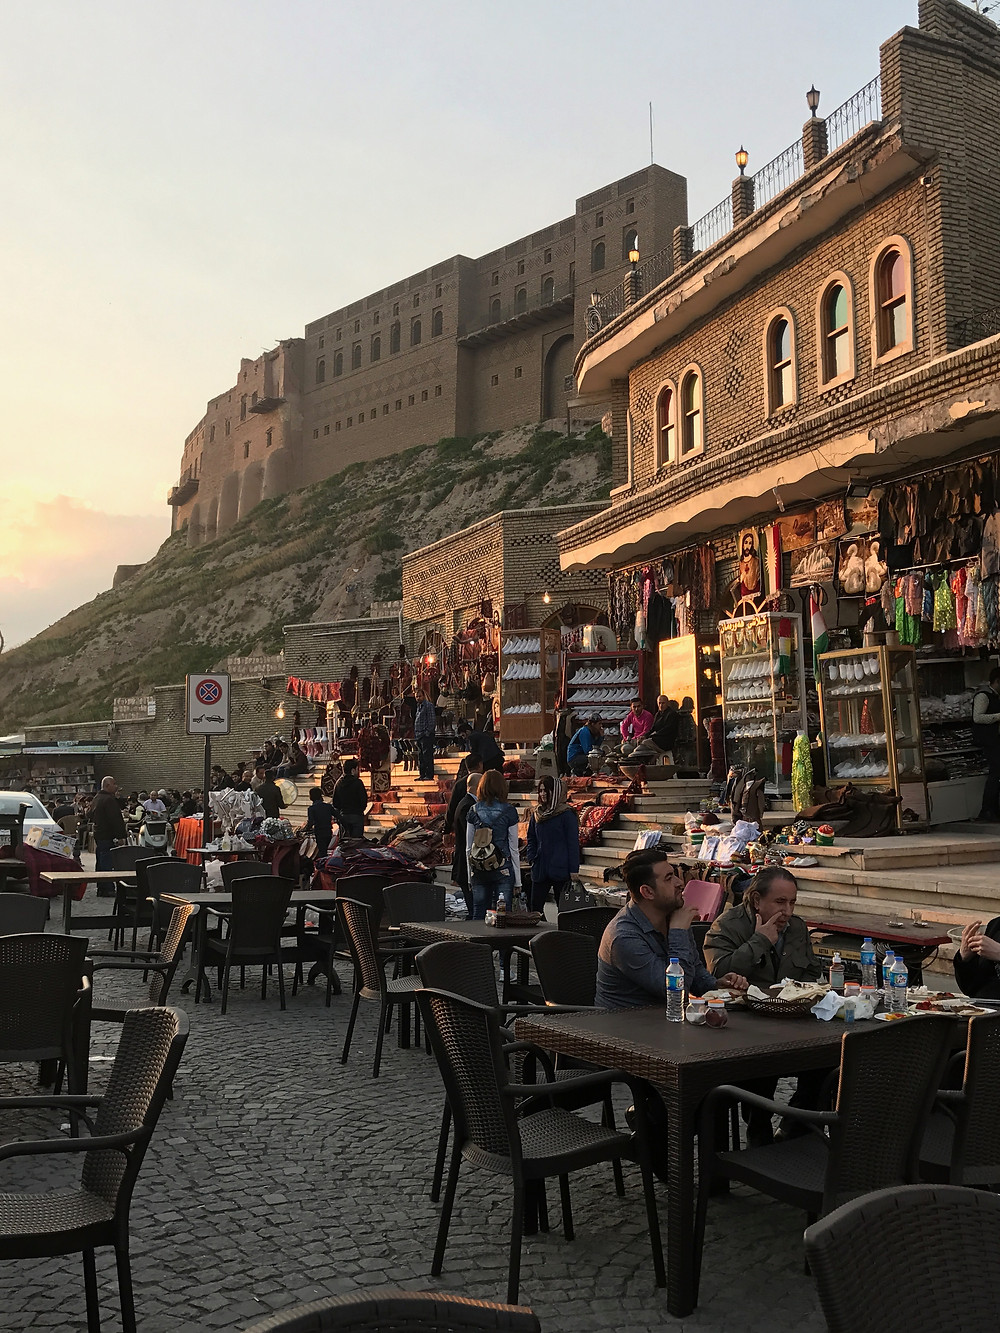 Sunset warms the walls of the Erbil Citadel, an ancient fortified city atop the tell overlooking the plaza below.